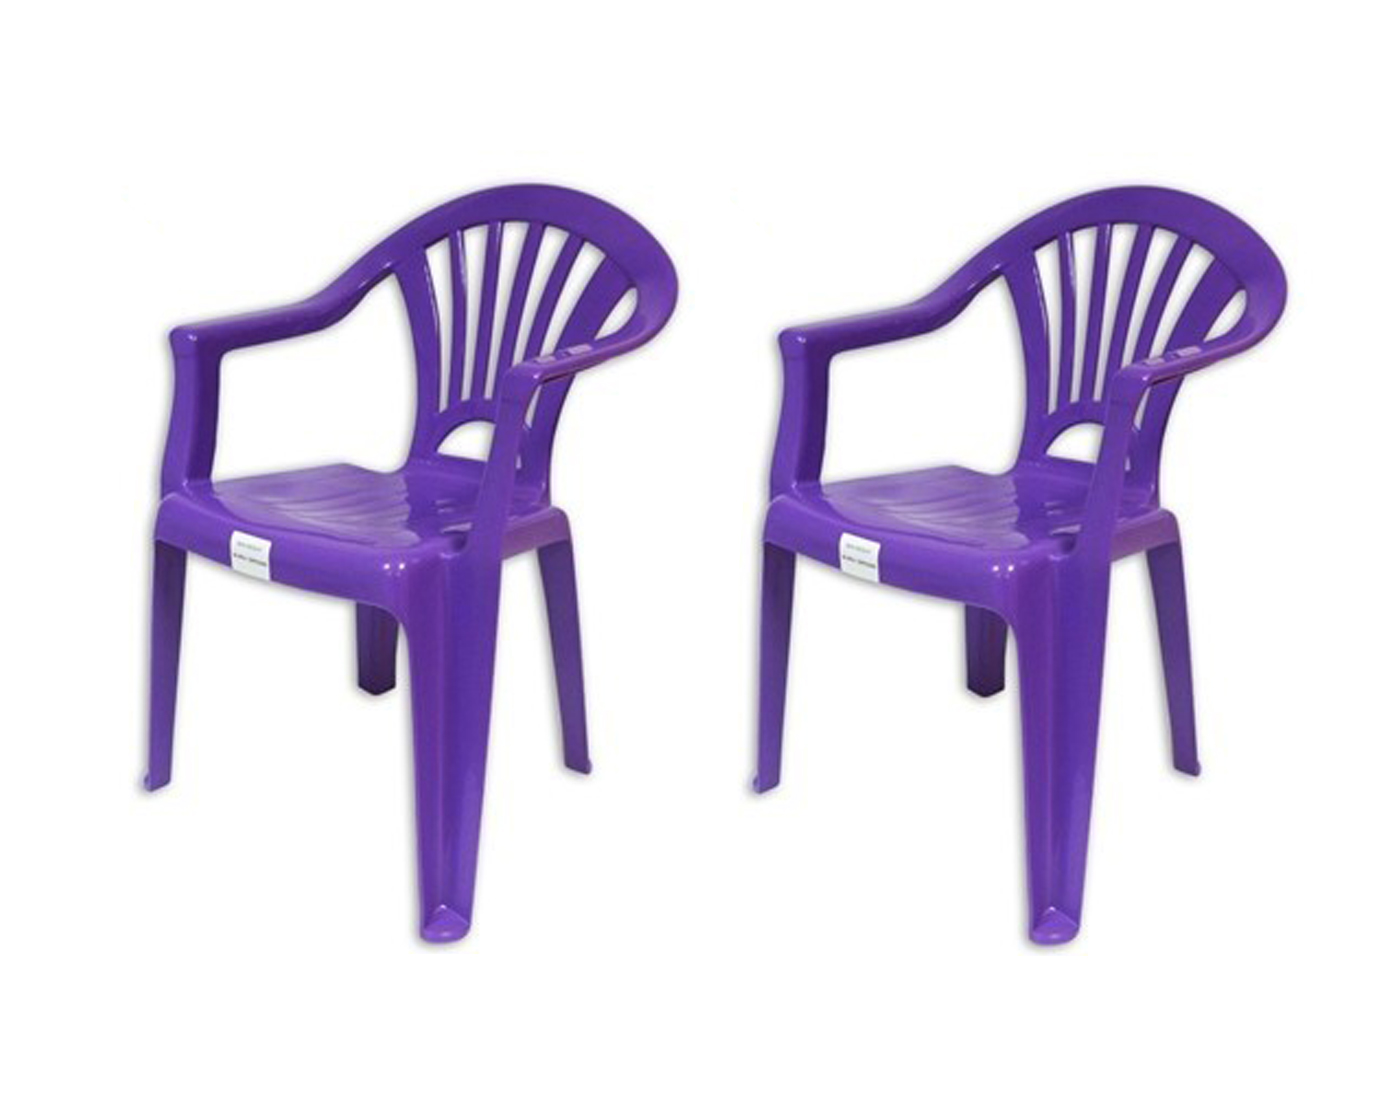 toddler plastic chairs couch and chair covers cheap stackable kids indoor or outdoor use purple